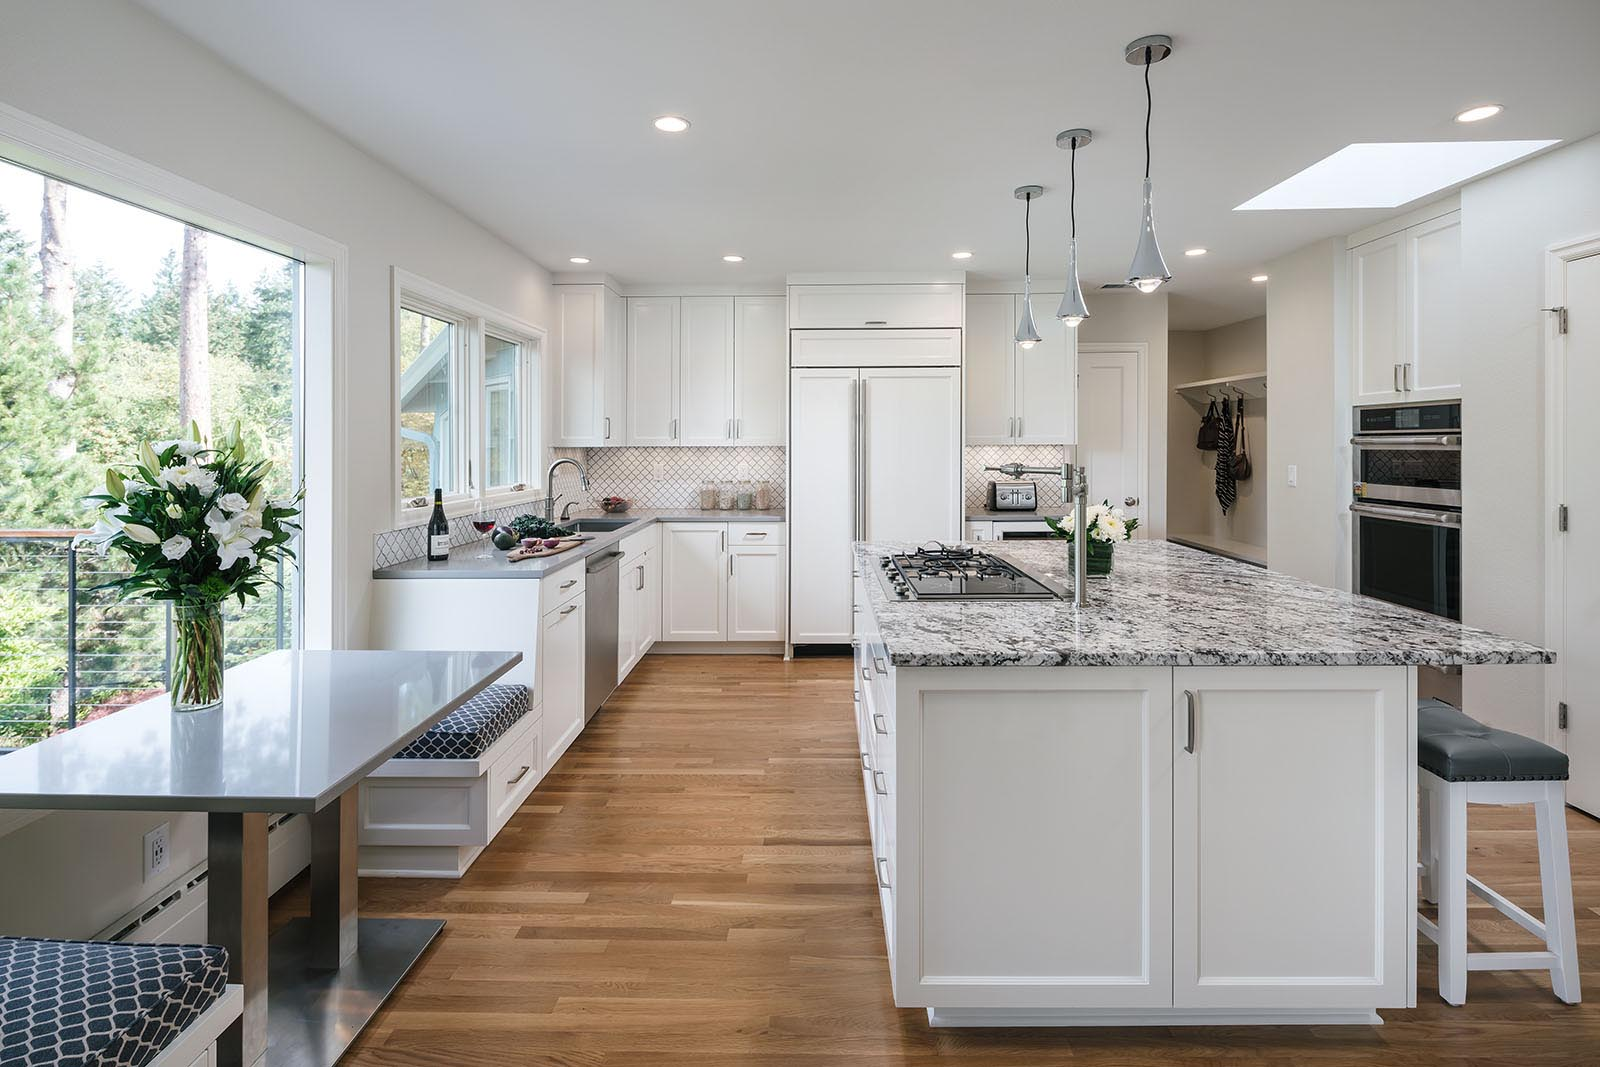 10 High End Kitchen Remodel Ideas For A Luxury